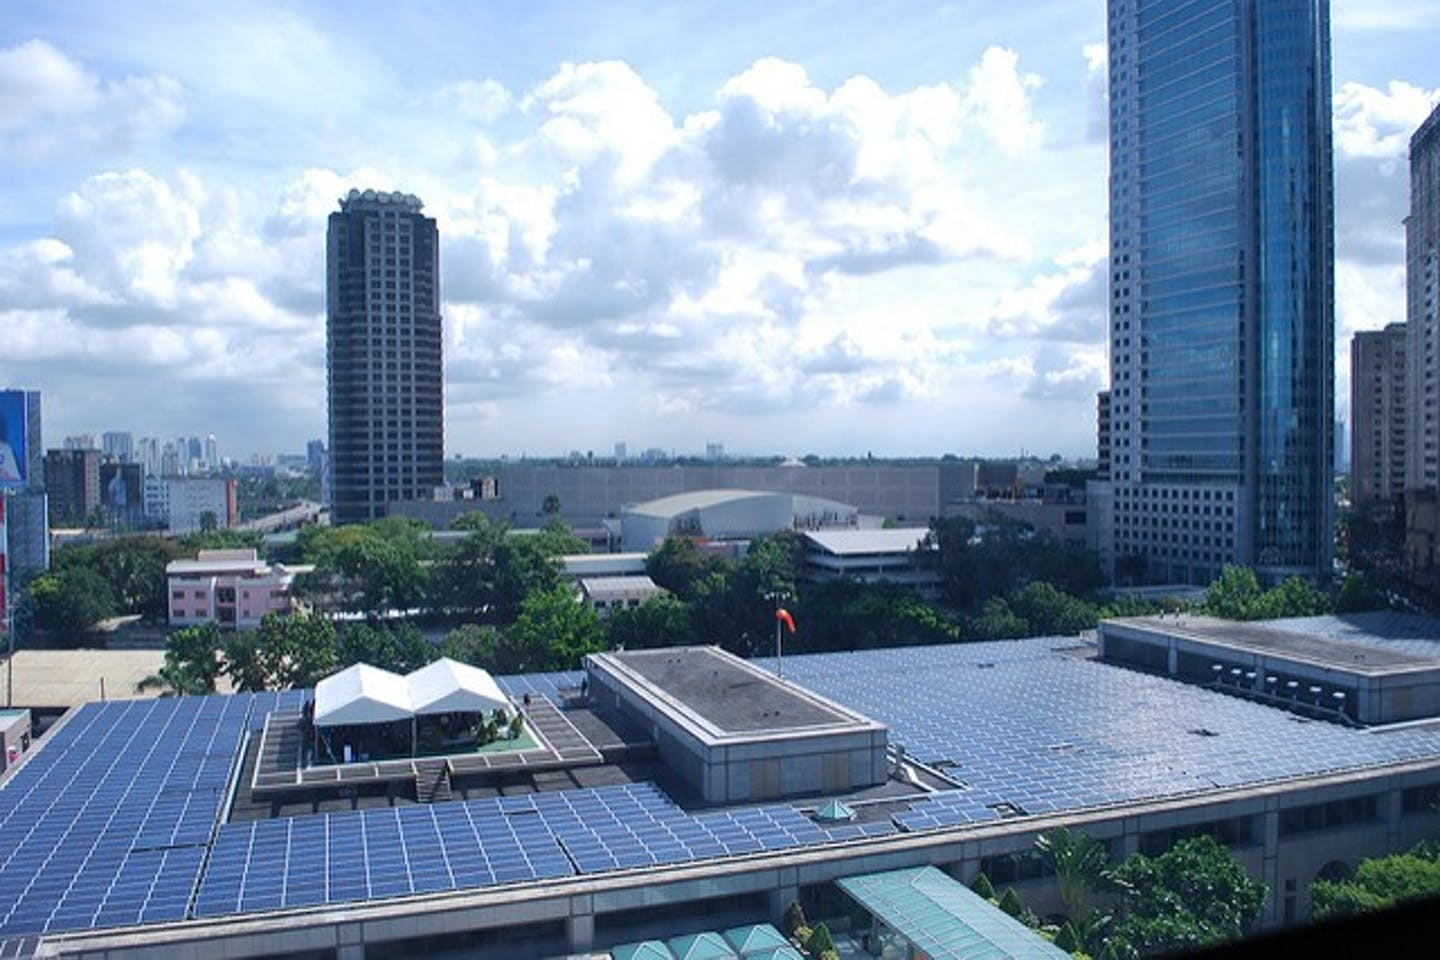 Solar panels on a rooftop in Manila